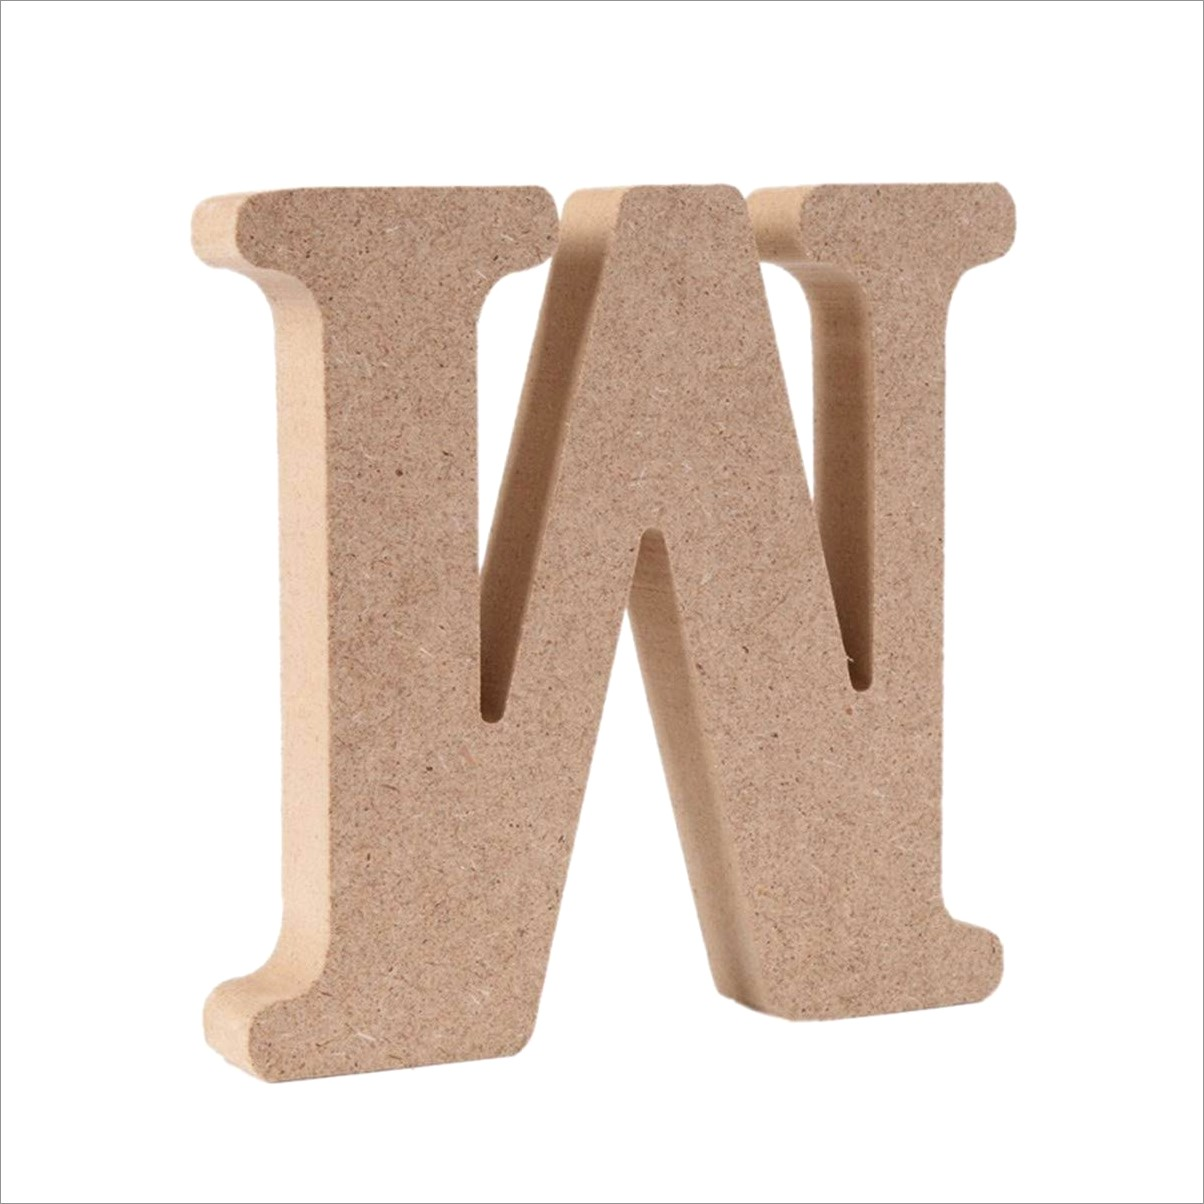 4 Inch Wooden Letters